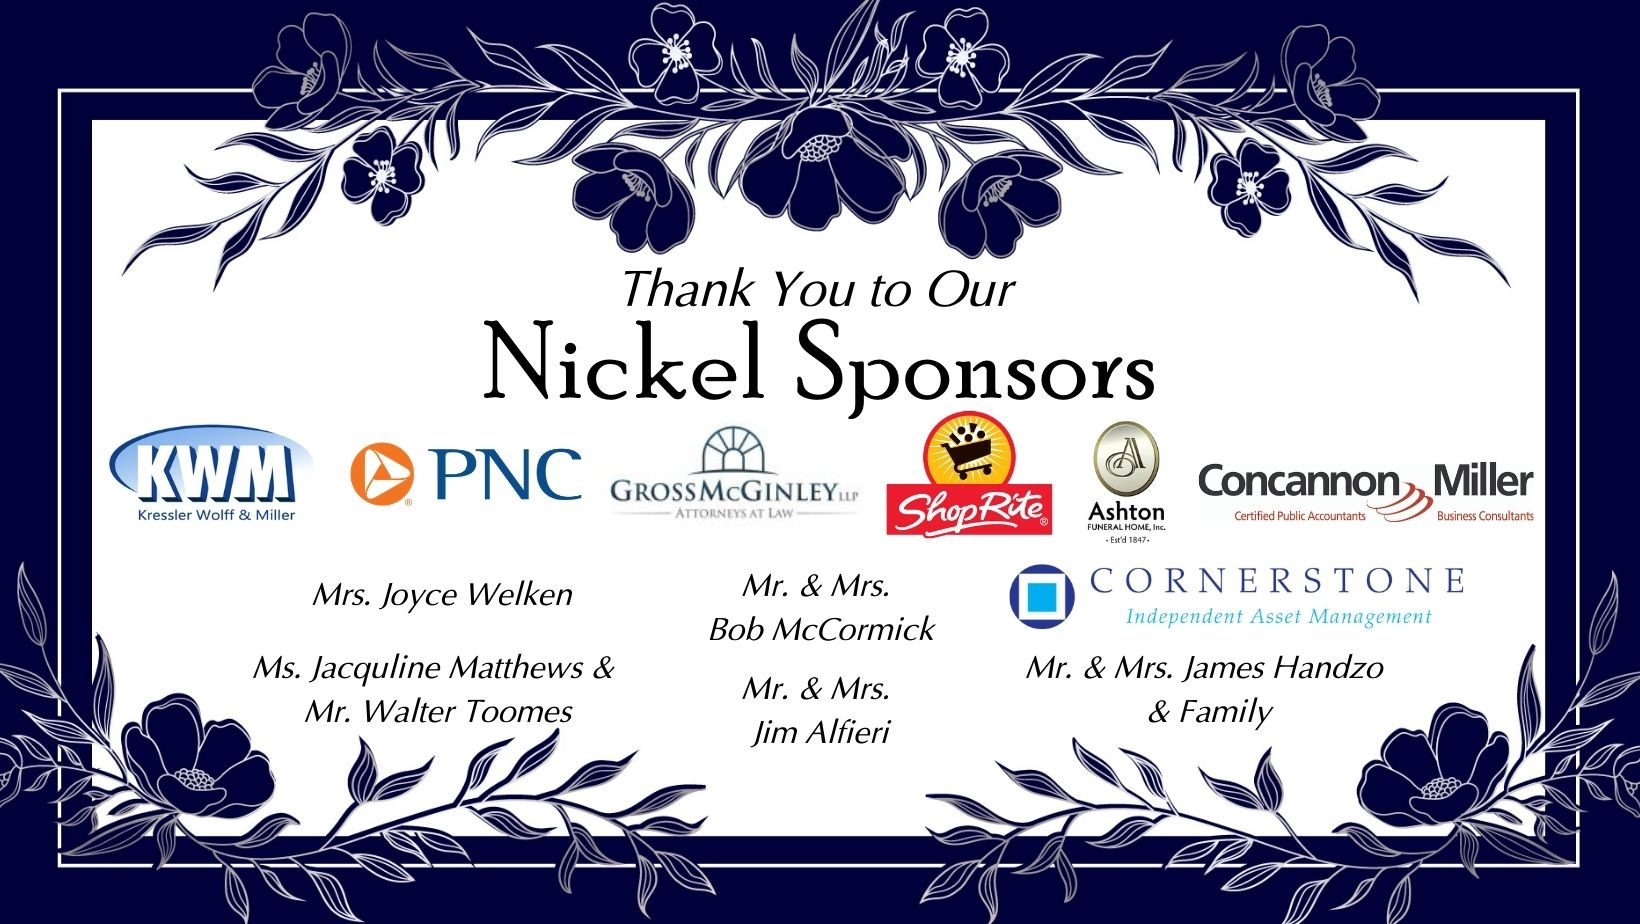 Nickle Sponsors March 31